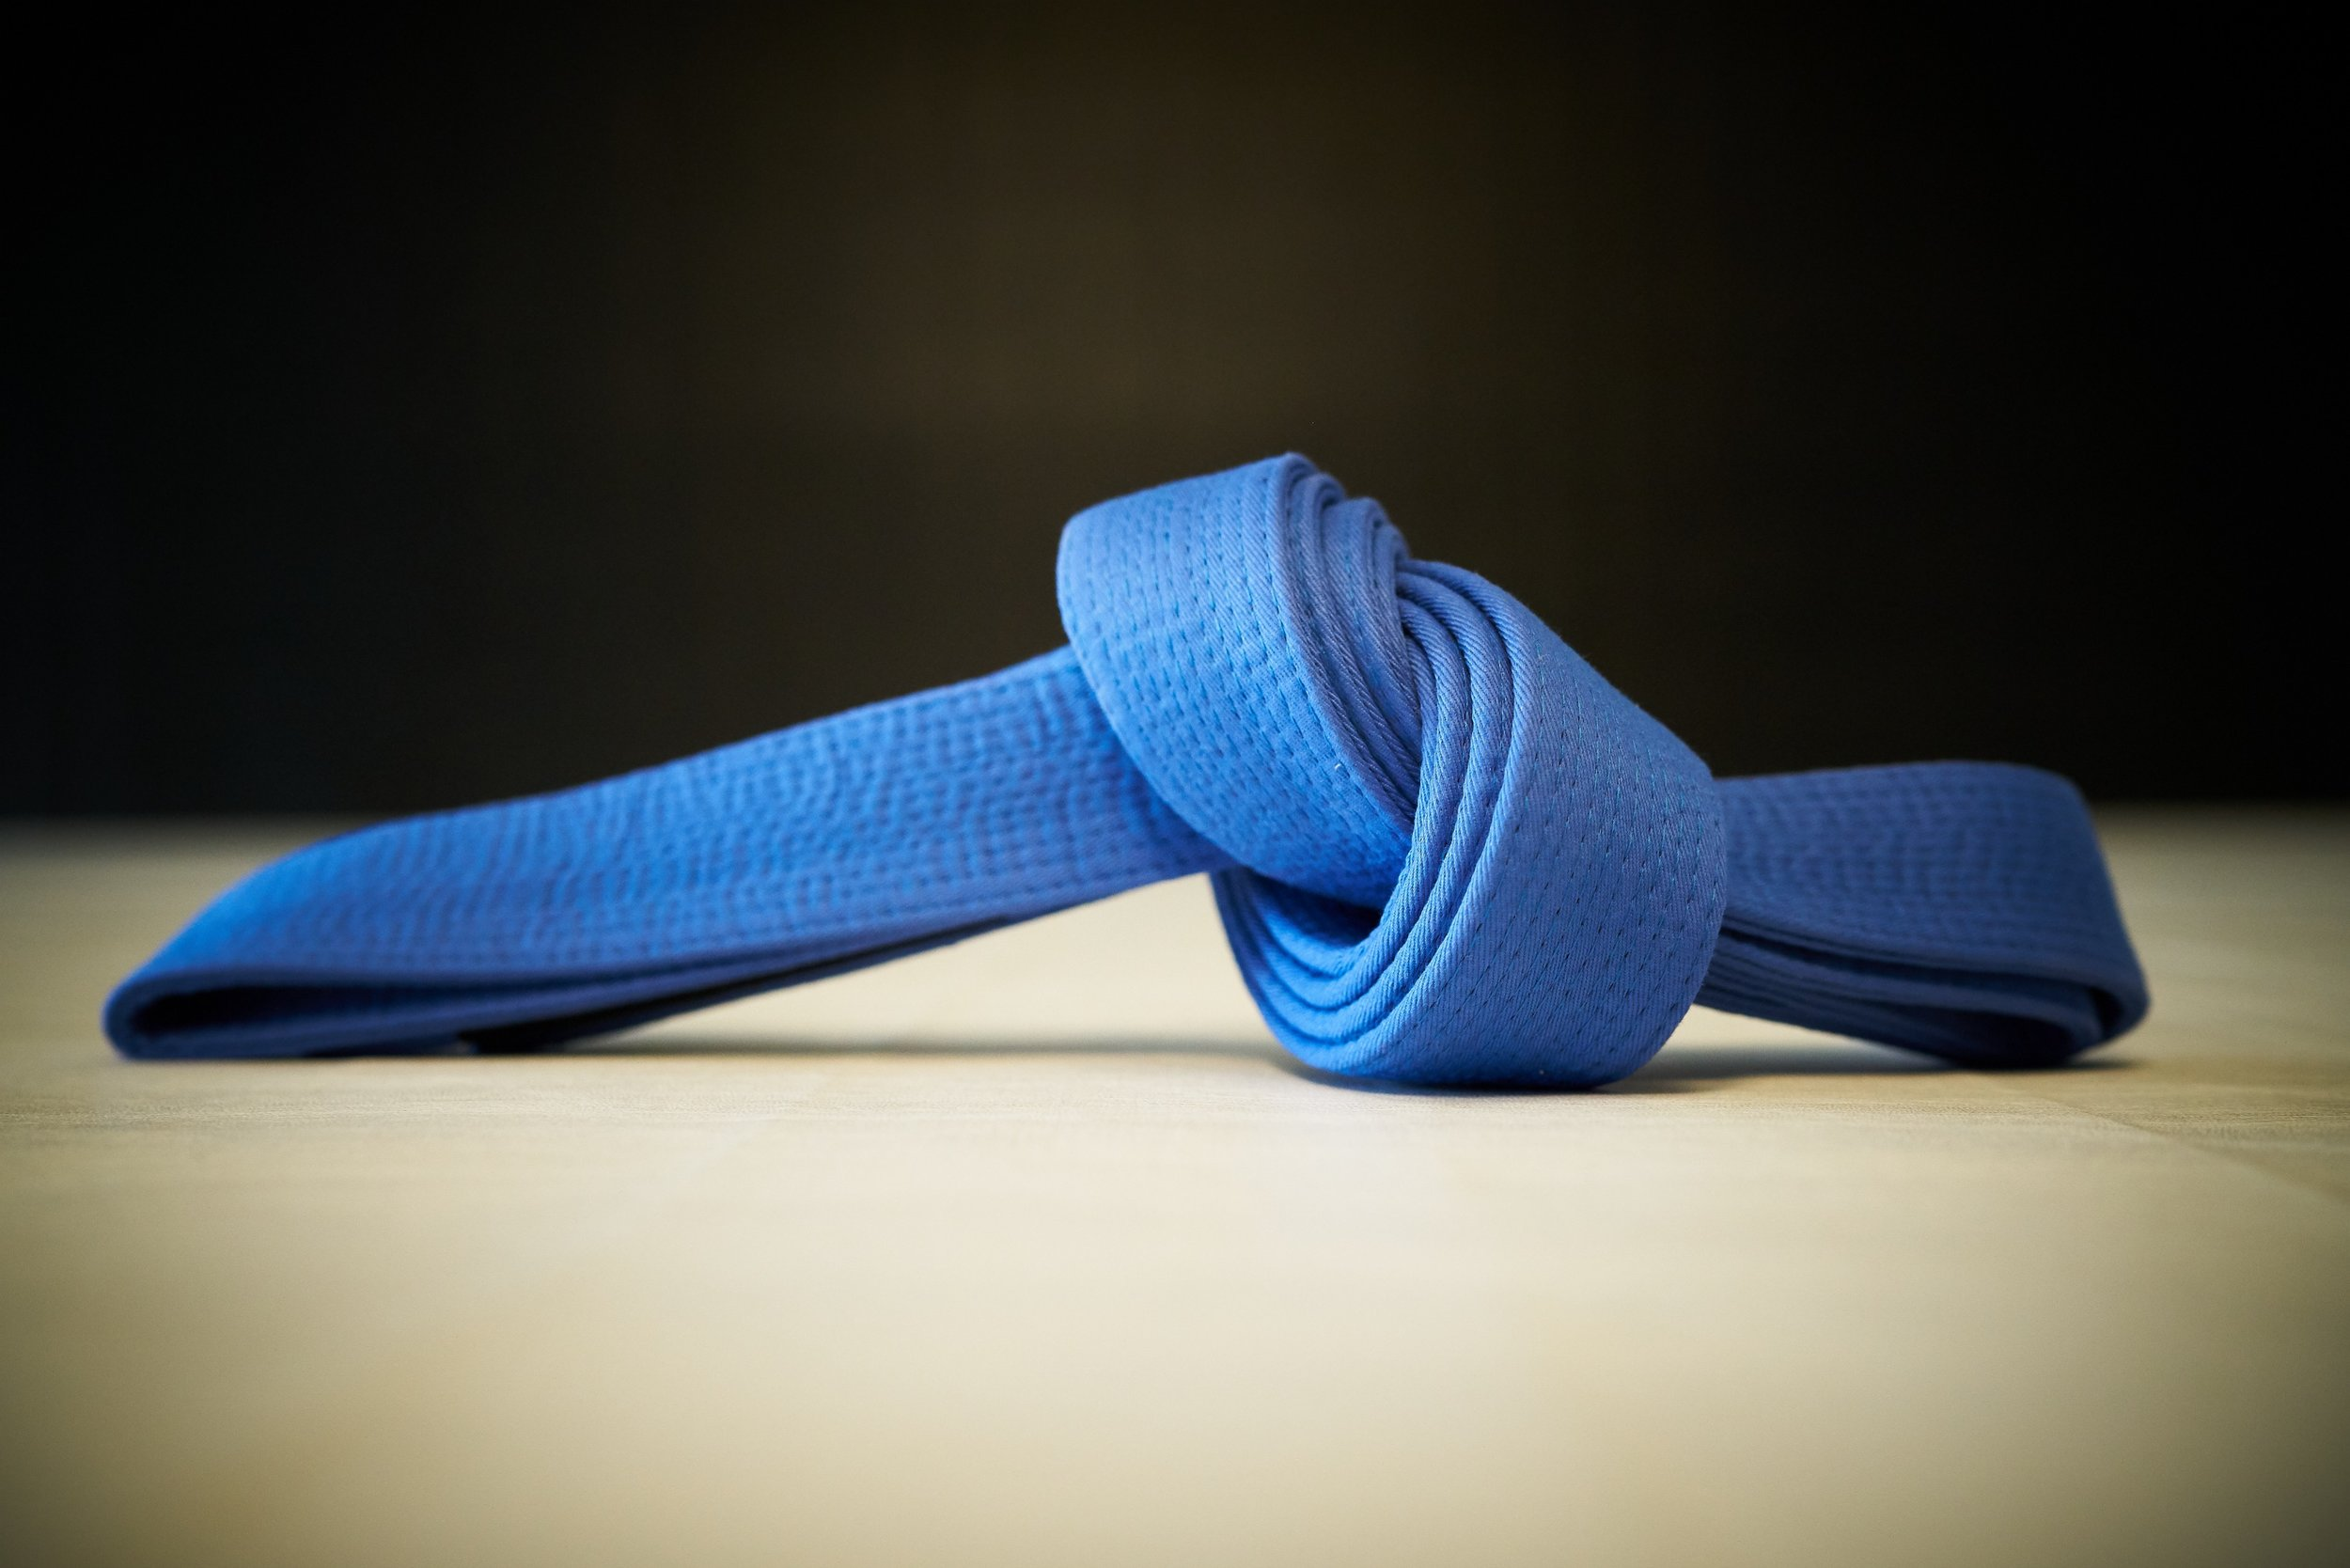 Blue Belt Plain.jpg